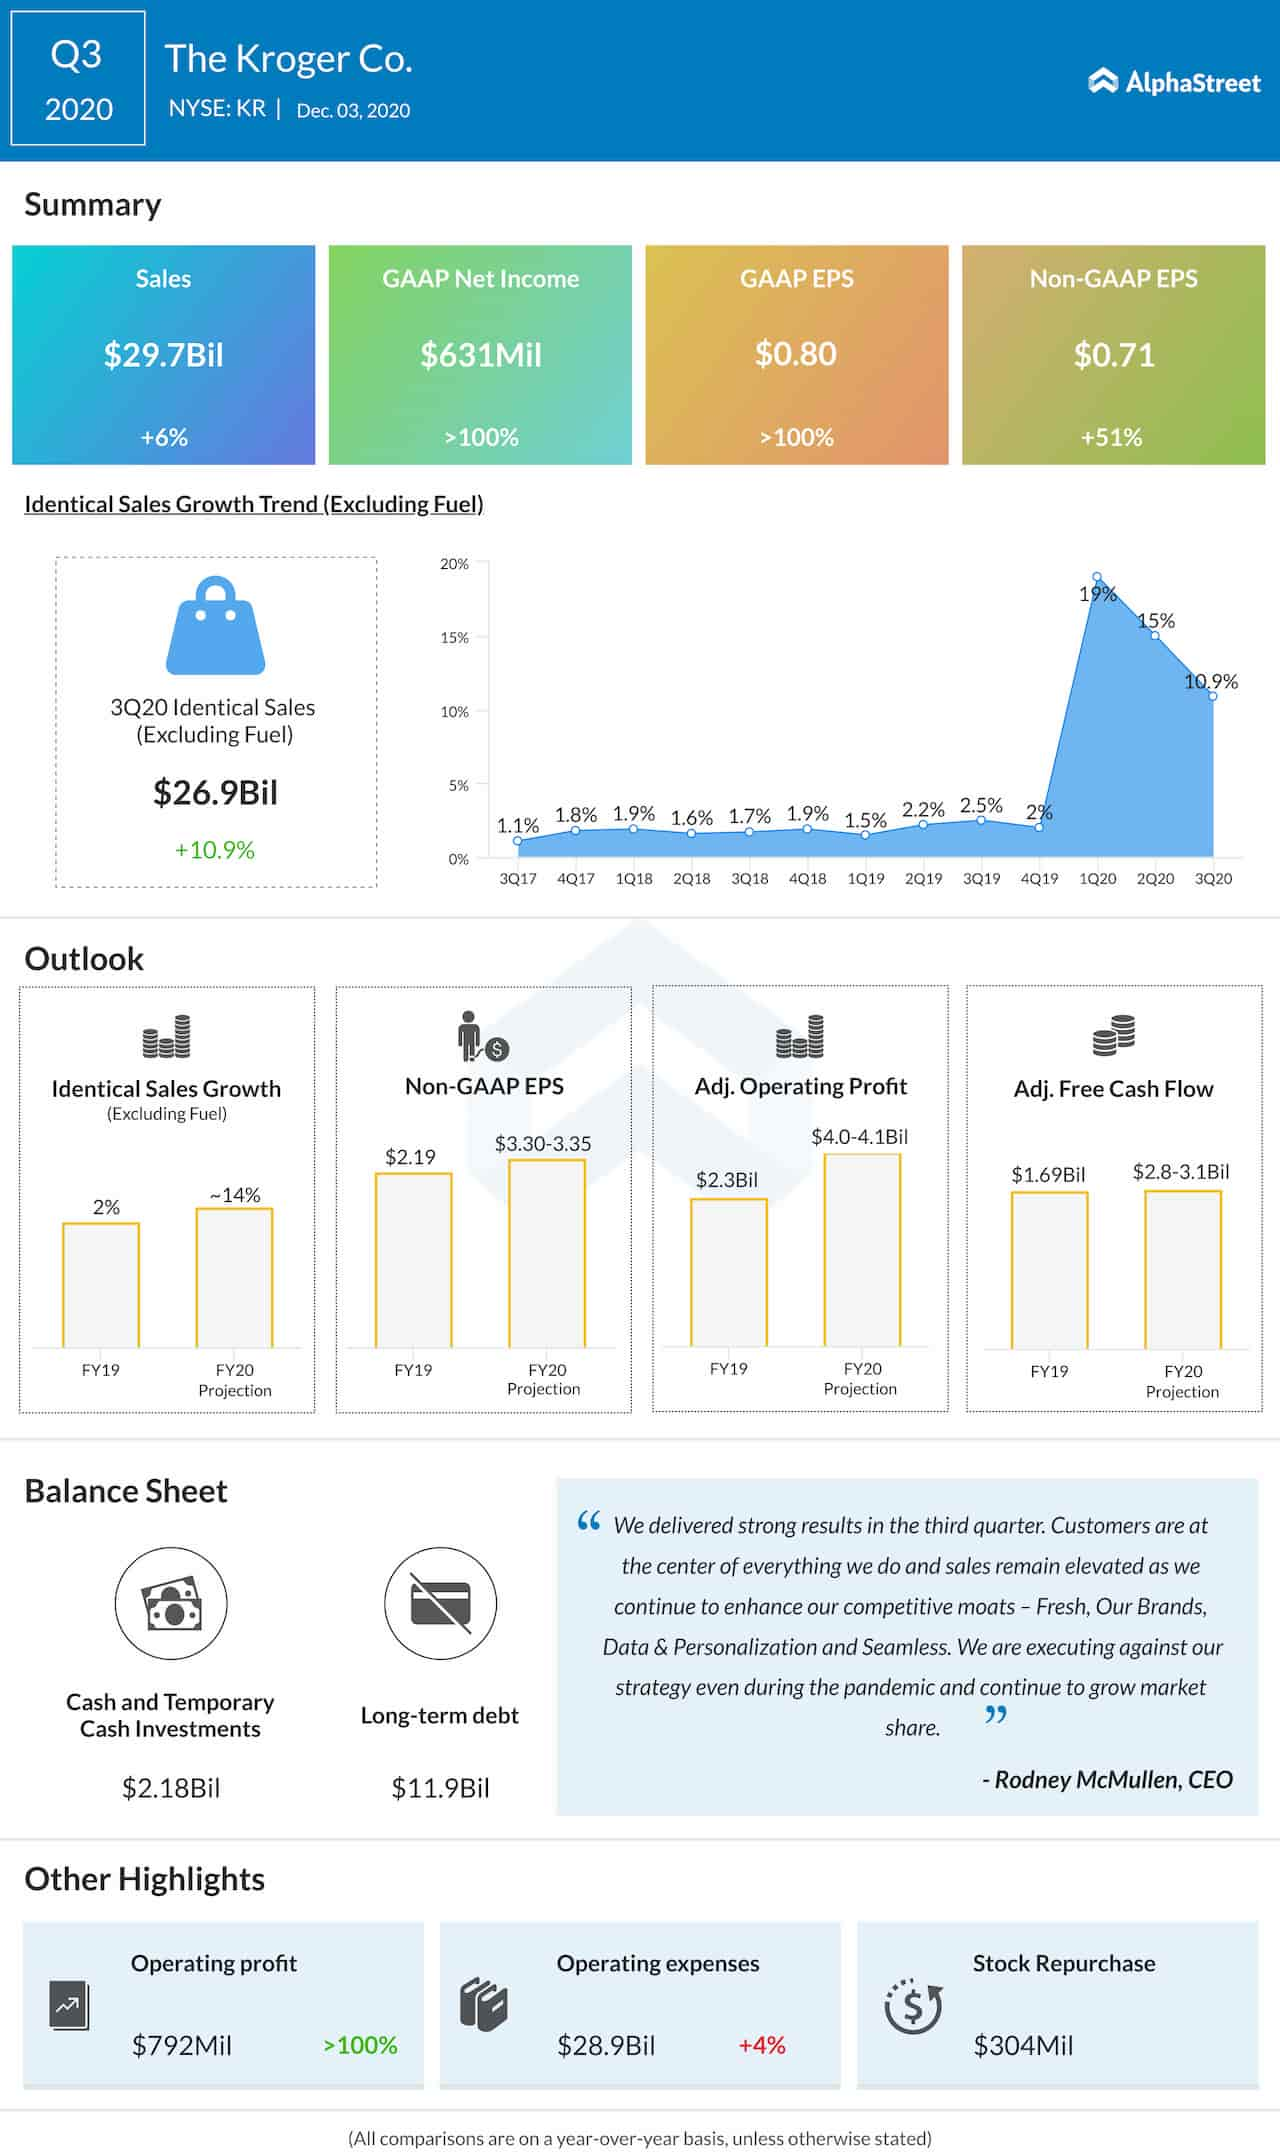 The Kroger Company Q3 2020 earnings infographic